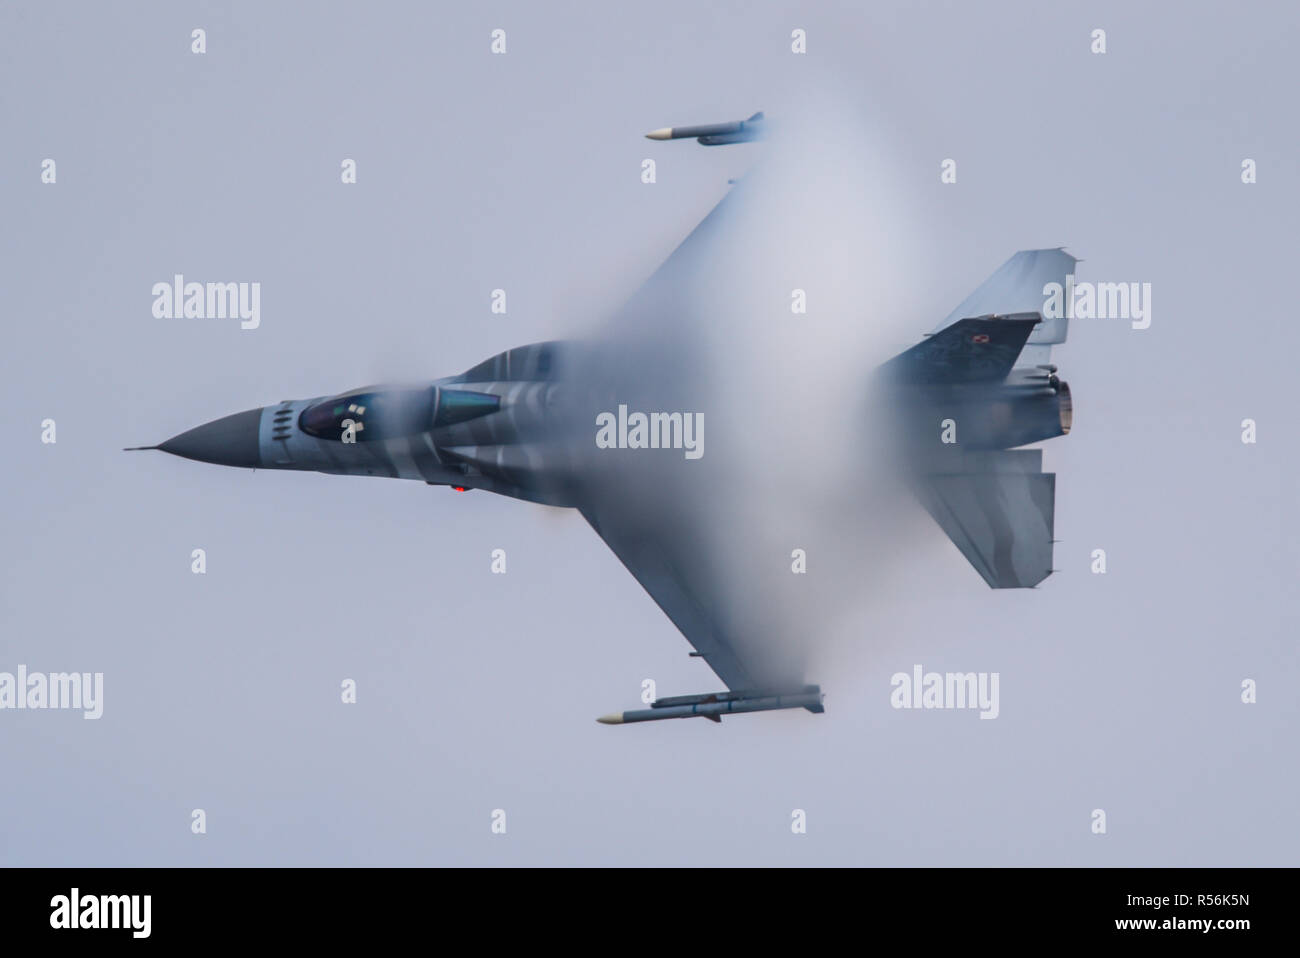 Polish Air Force Lockheed F-16 fighter jet plane creating a vapor cone shock cone at high speed at Royal International Air Tattoo, RIAT 2018, Fairford - Stock Image